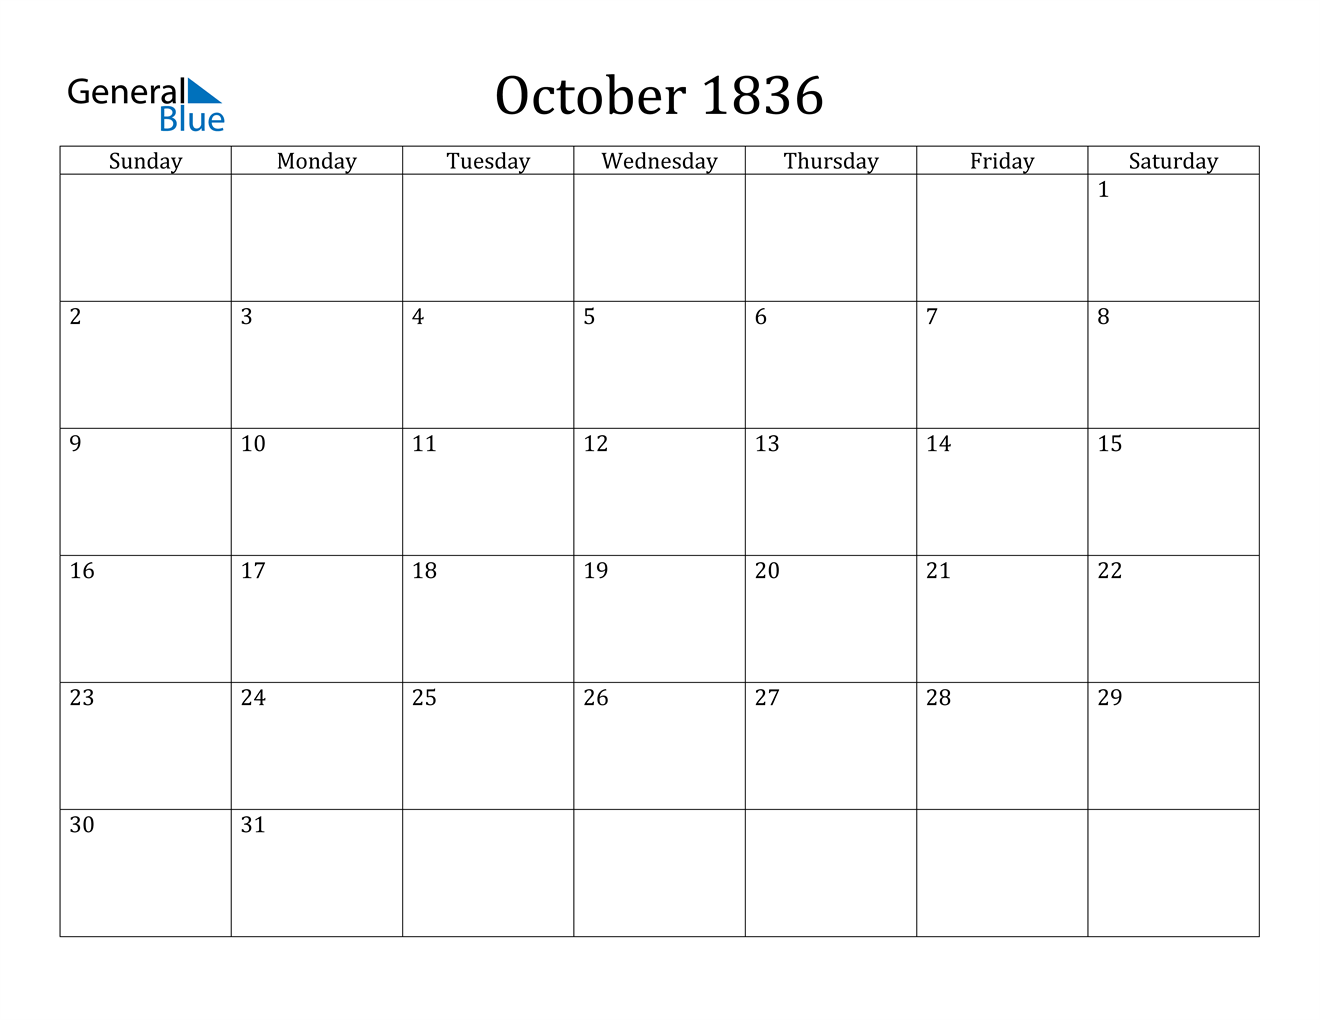 Image of October 1836 Calendar